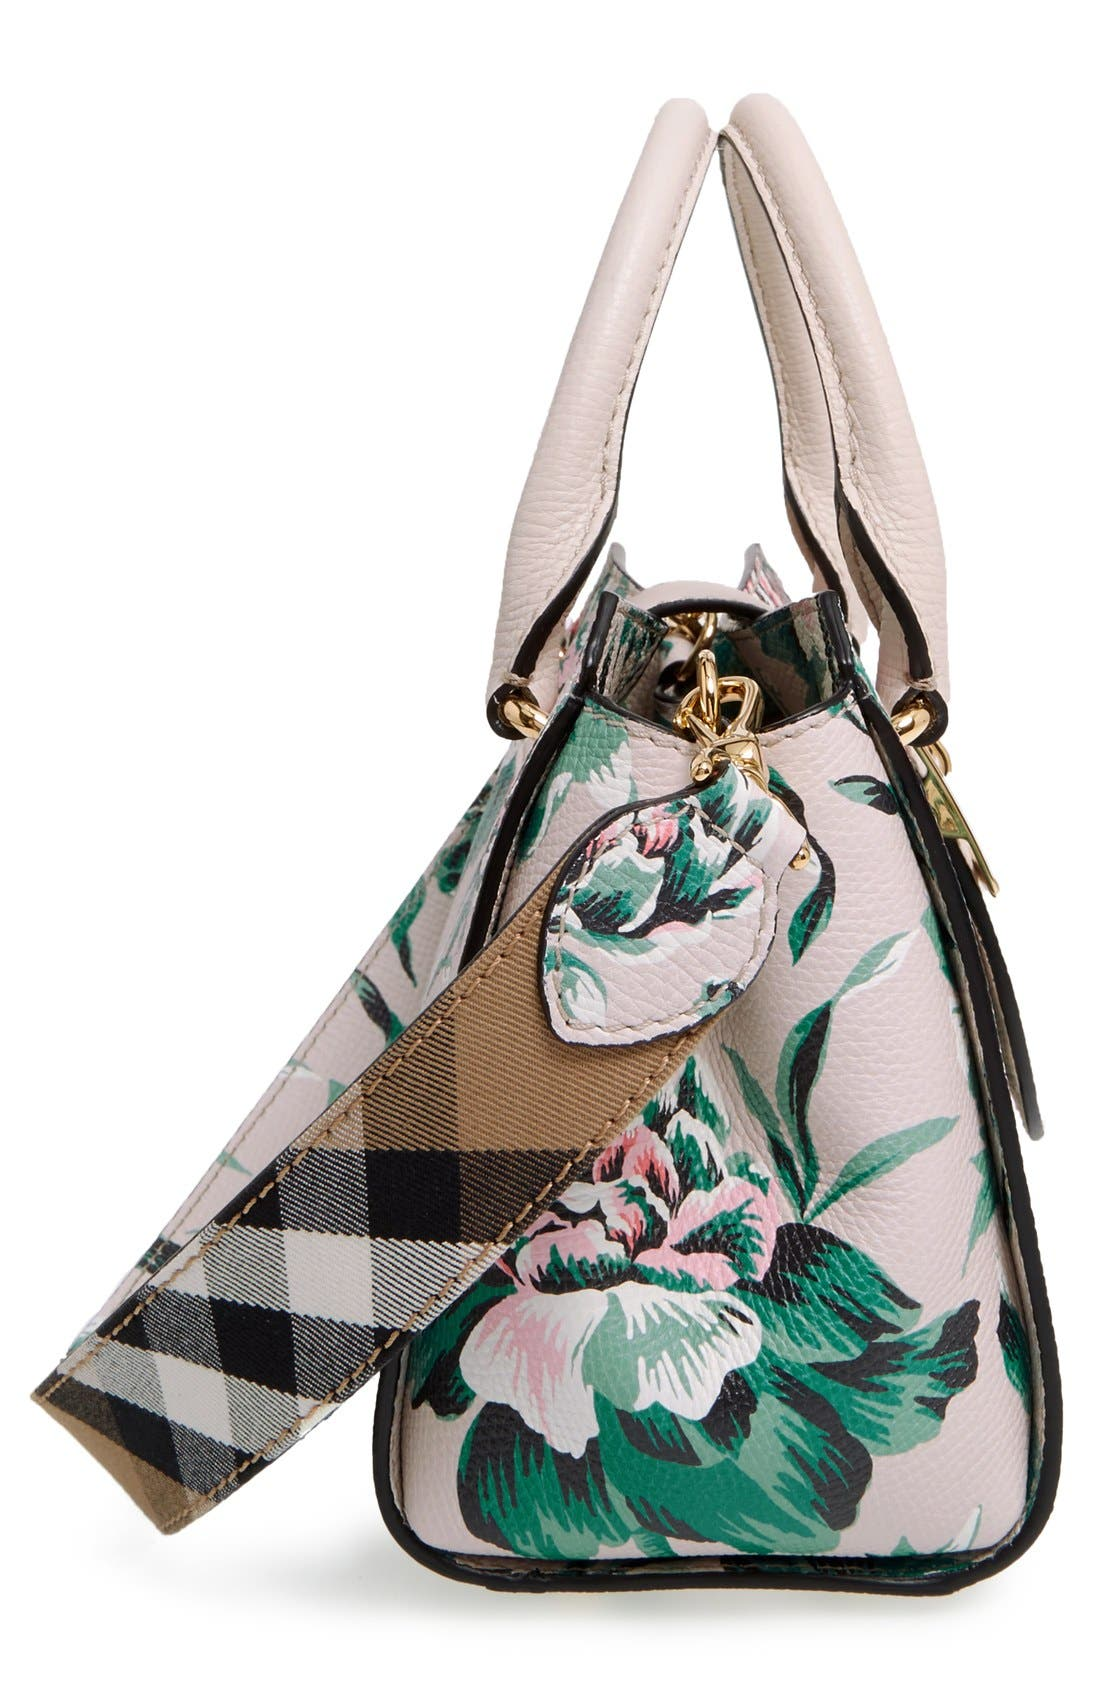 Small Buckle Floral Calfskin Leather Satchel,                             Alternate thumbnail 5, color,                             Emerald Green